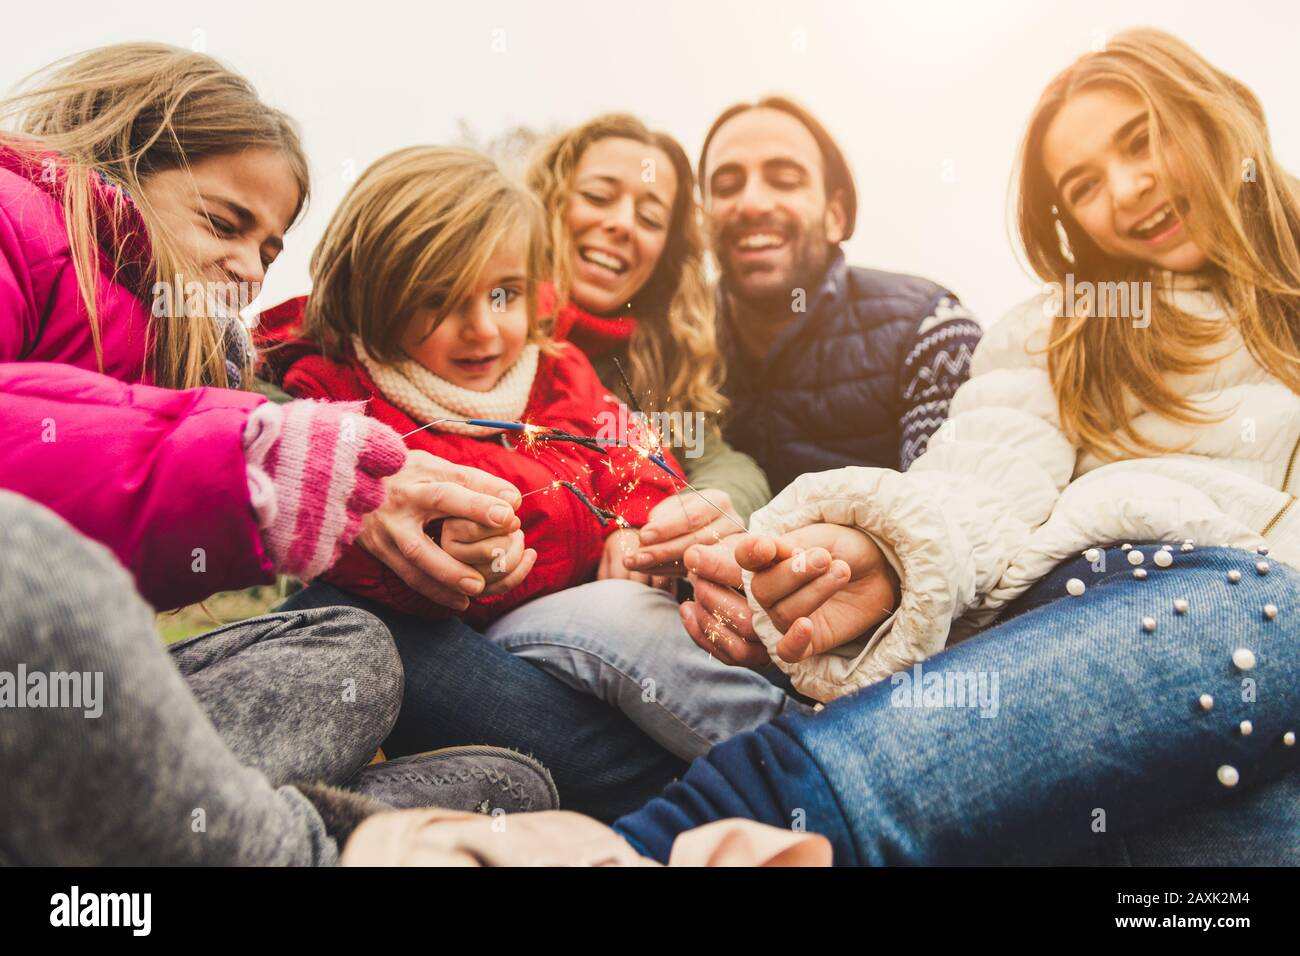 Happy family having a party outdoor celebrating with sparkler fireworks on new year's eve Stock Photo